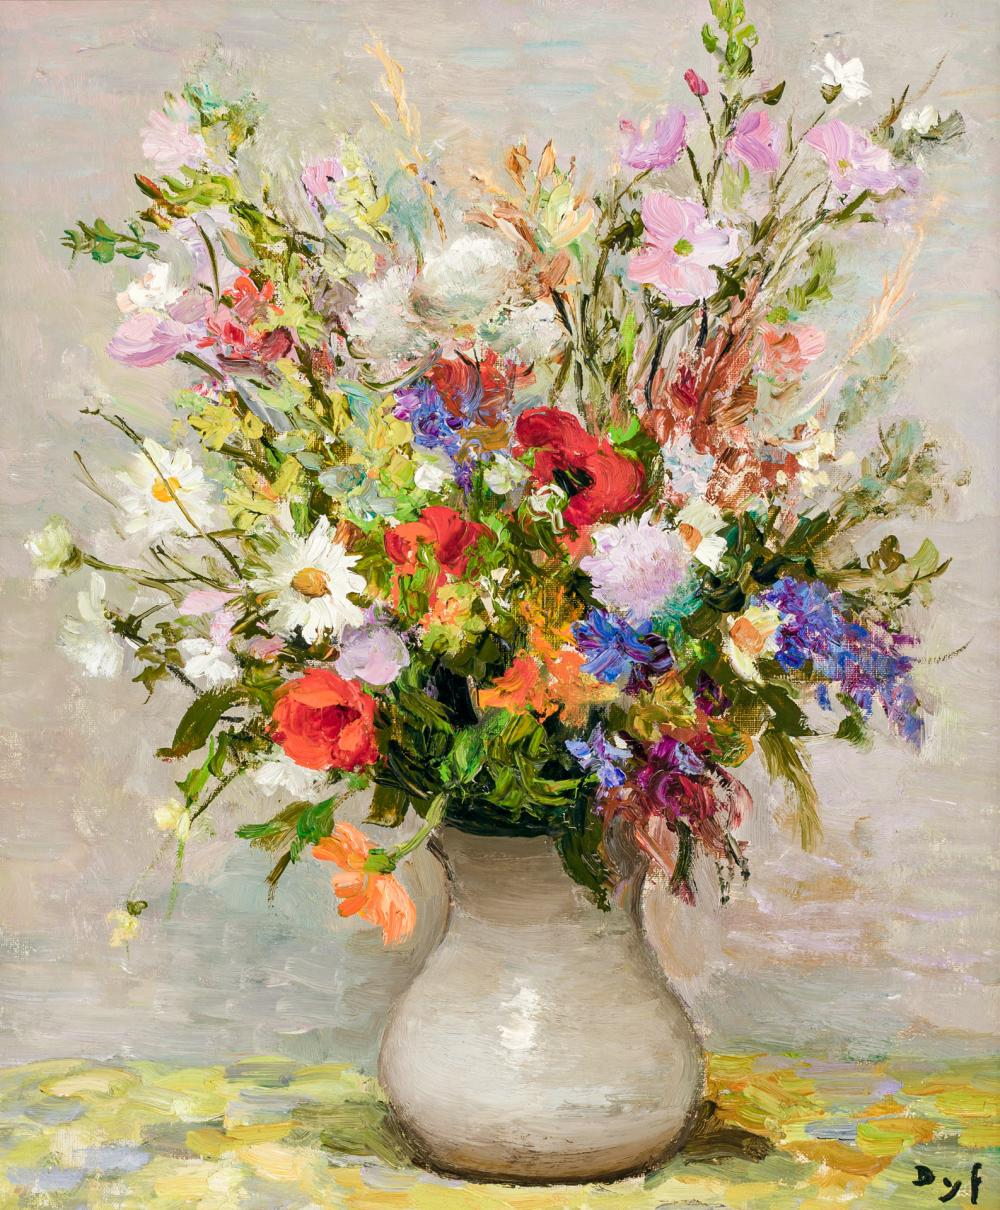 """MARCEL DYF, French (1899-1985), """"Fleurs des Champs"""", oil on canvas, signed lower right """"Dyf"""", 21 3/4 x 18 1/8 inches"""